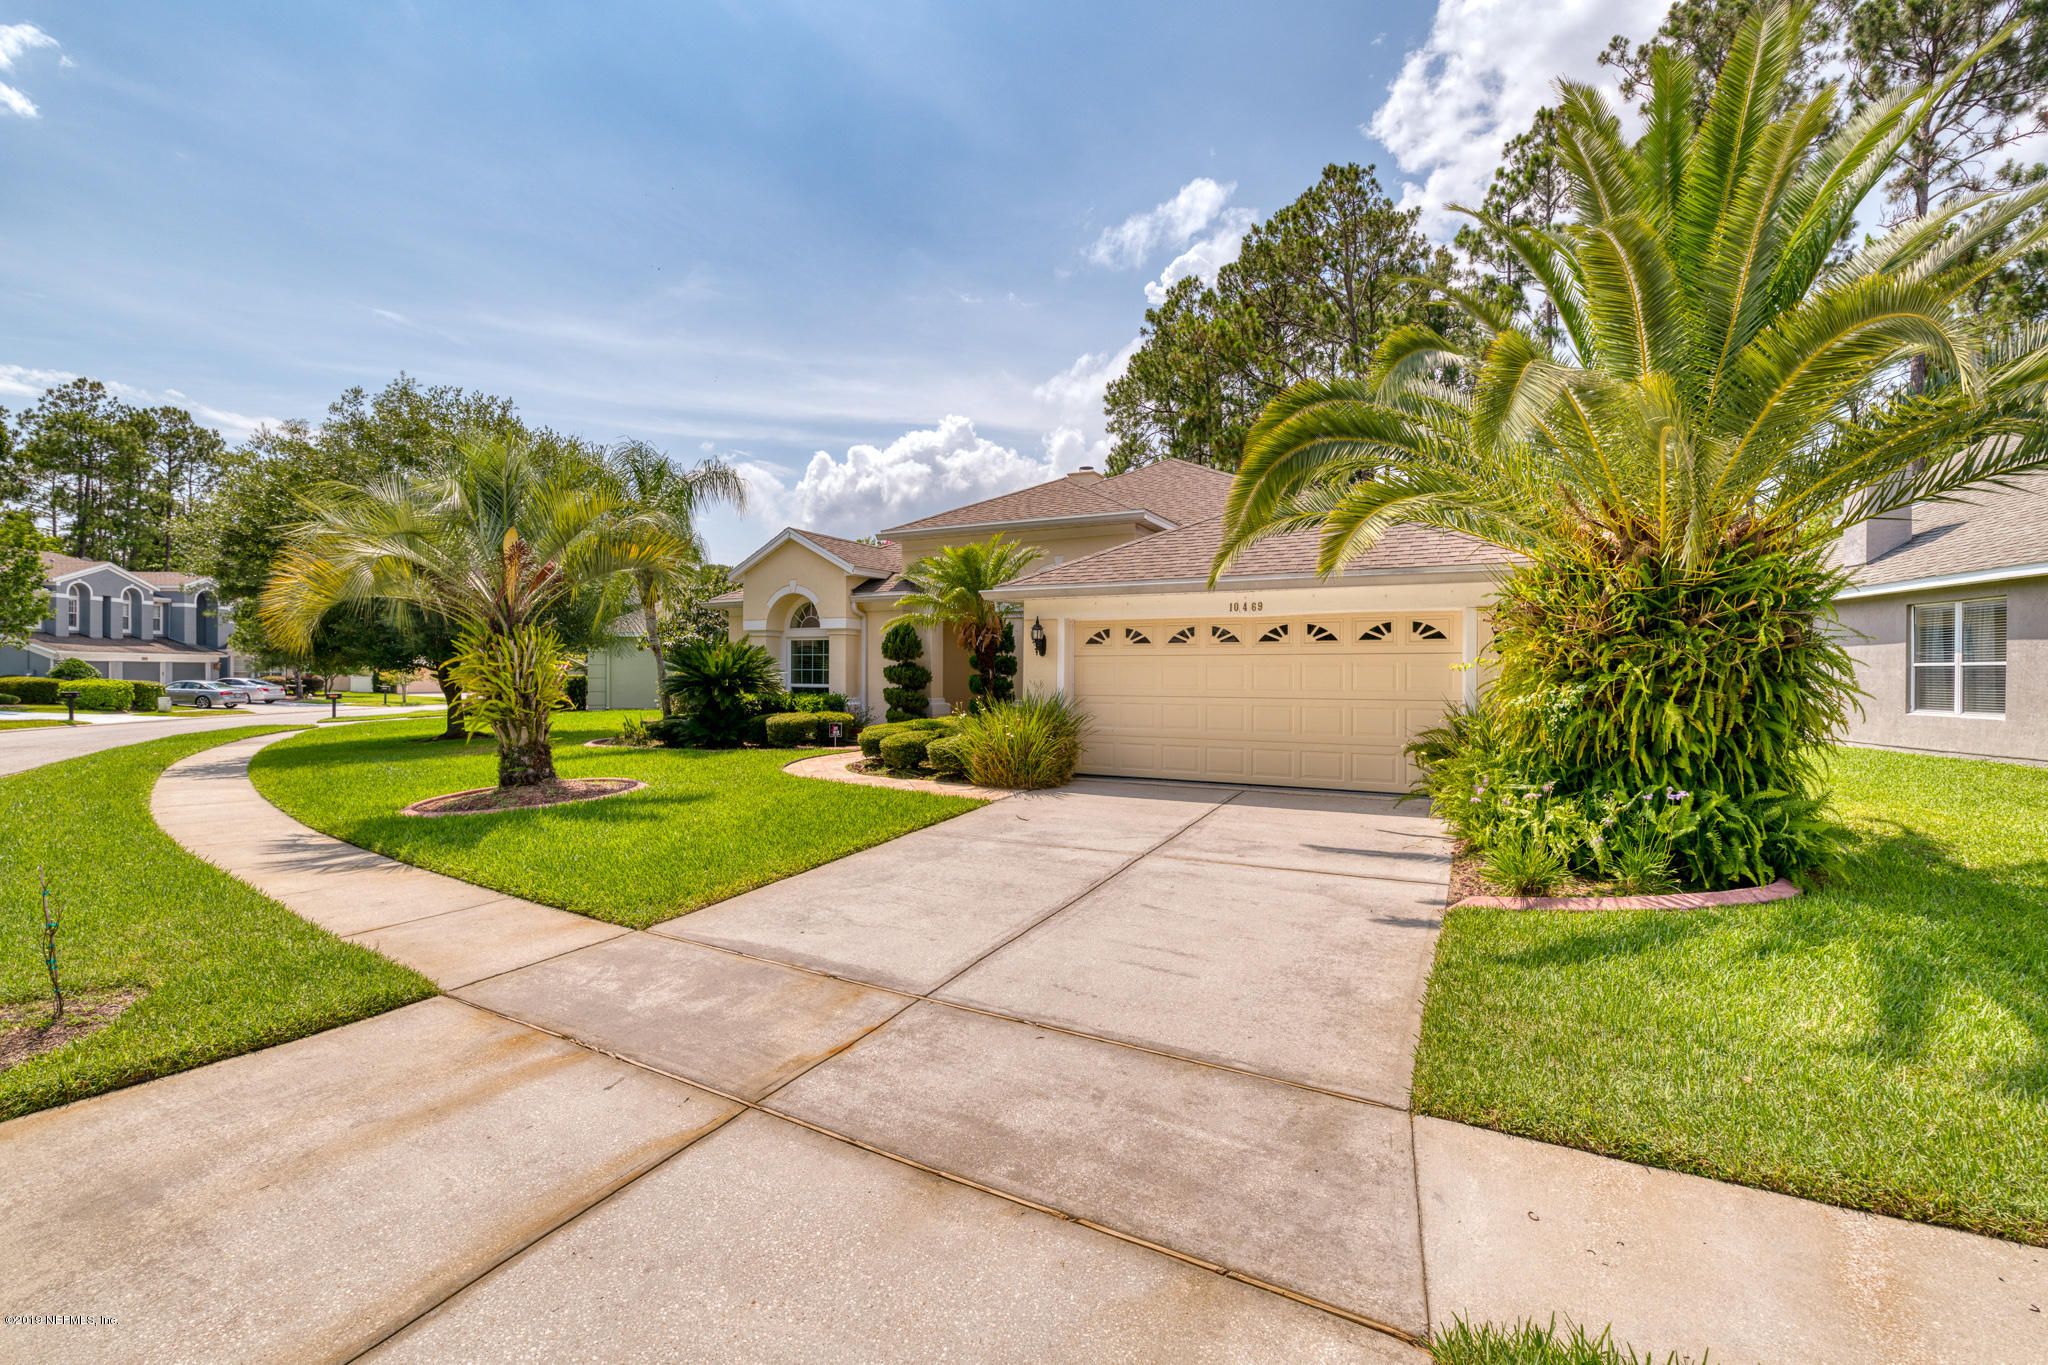 10469 CRESTON GLEN CIR JACKSONVILLE - 26